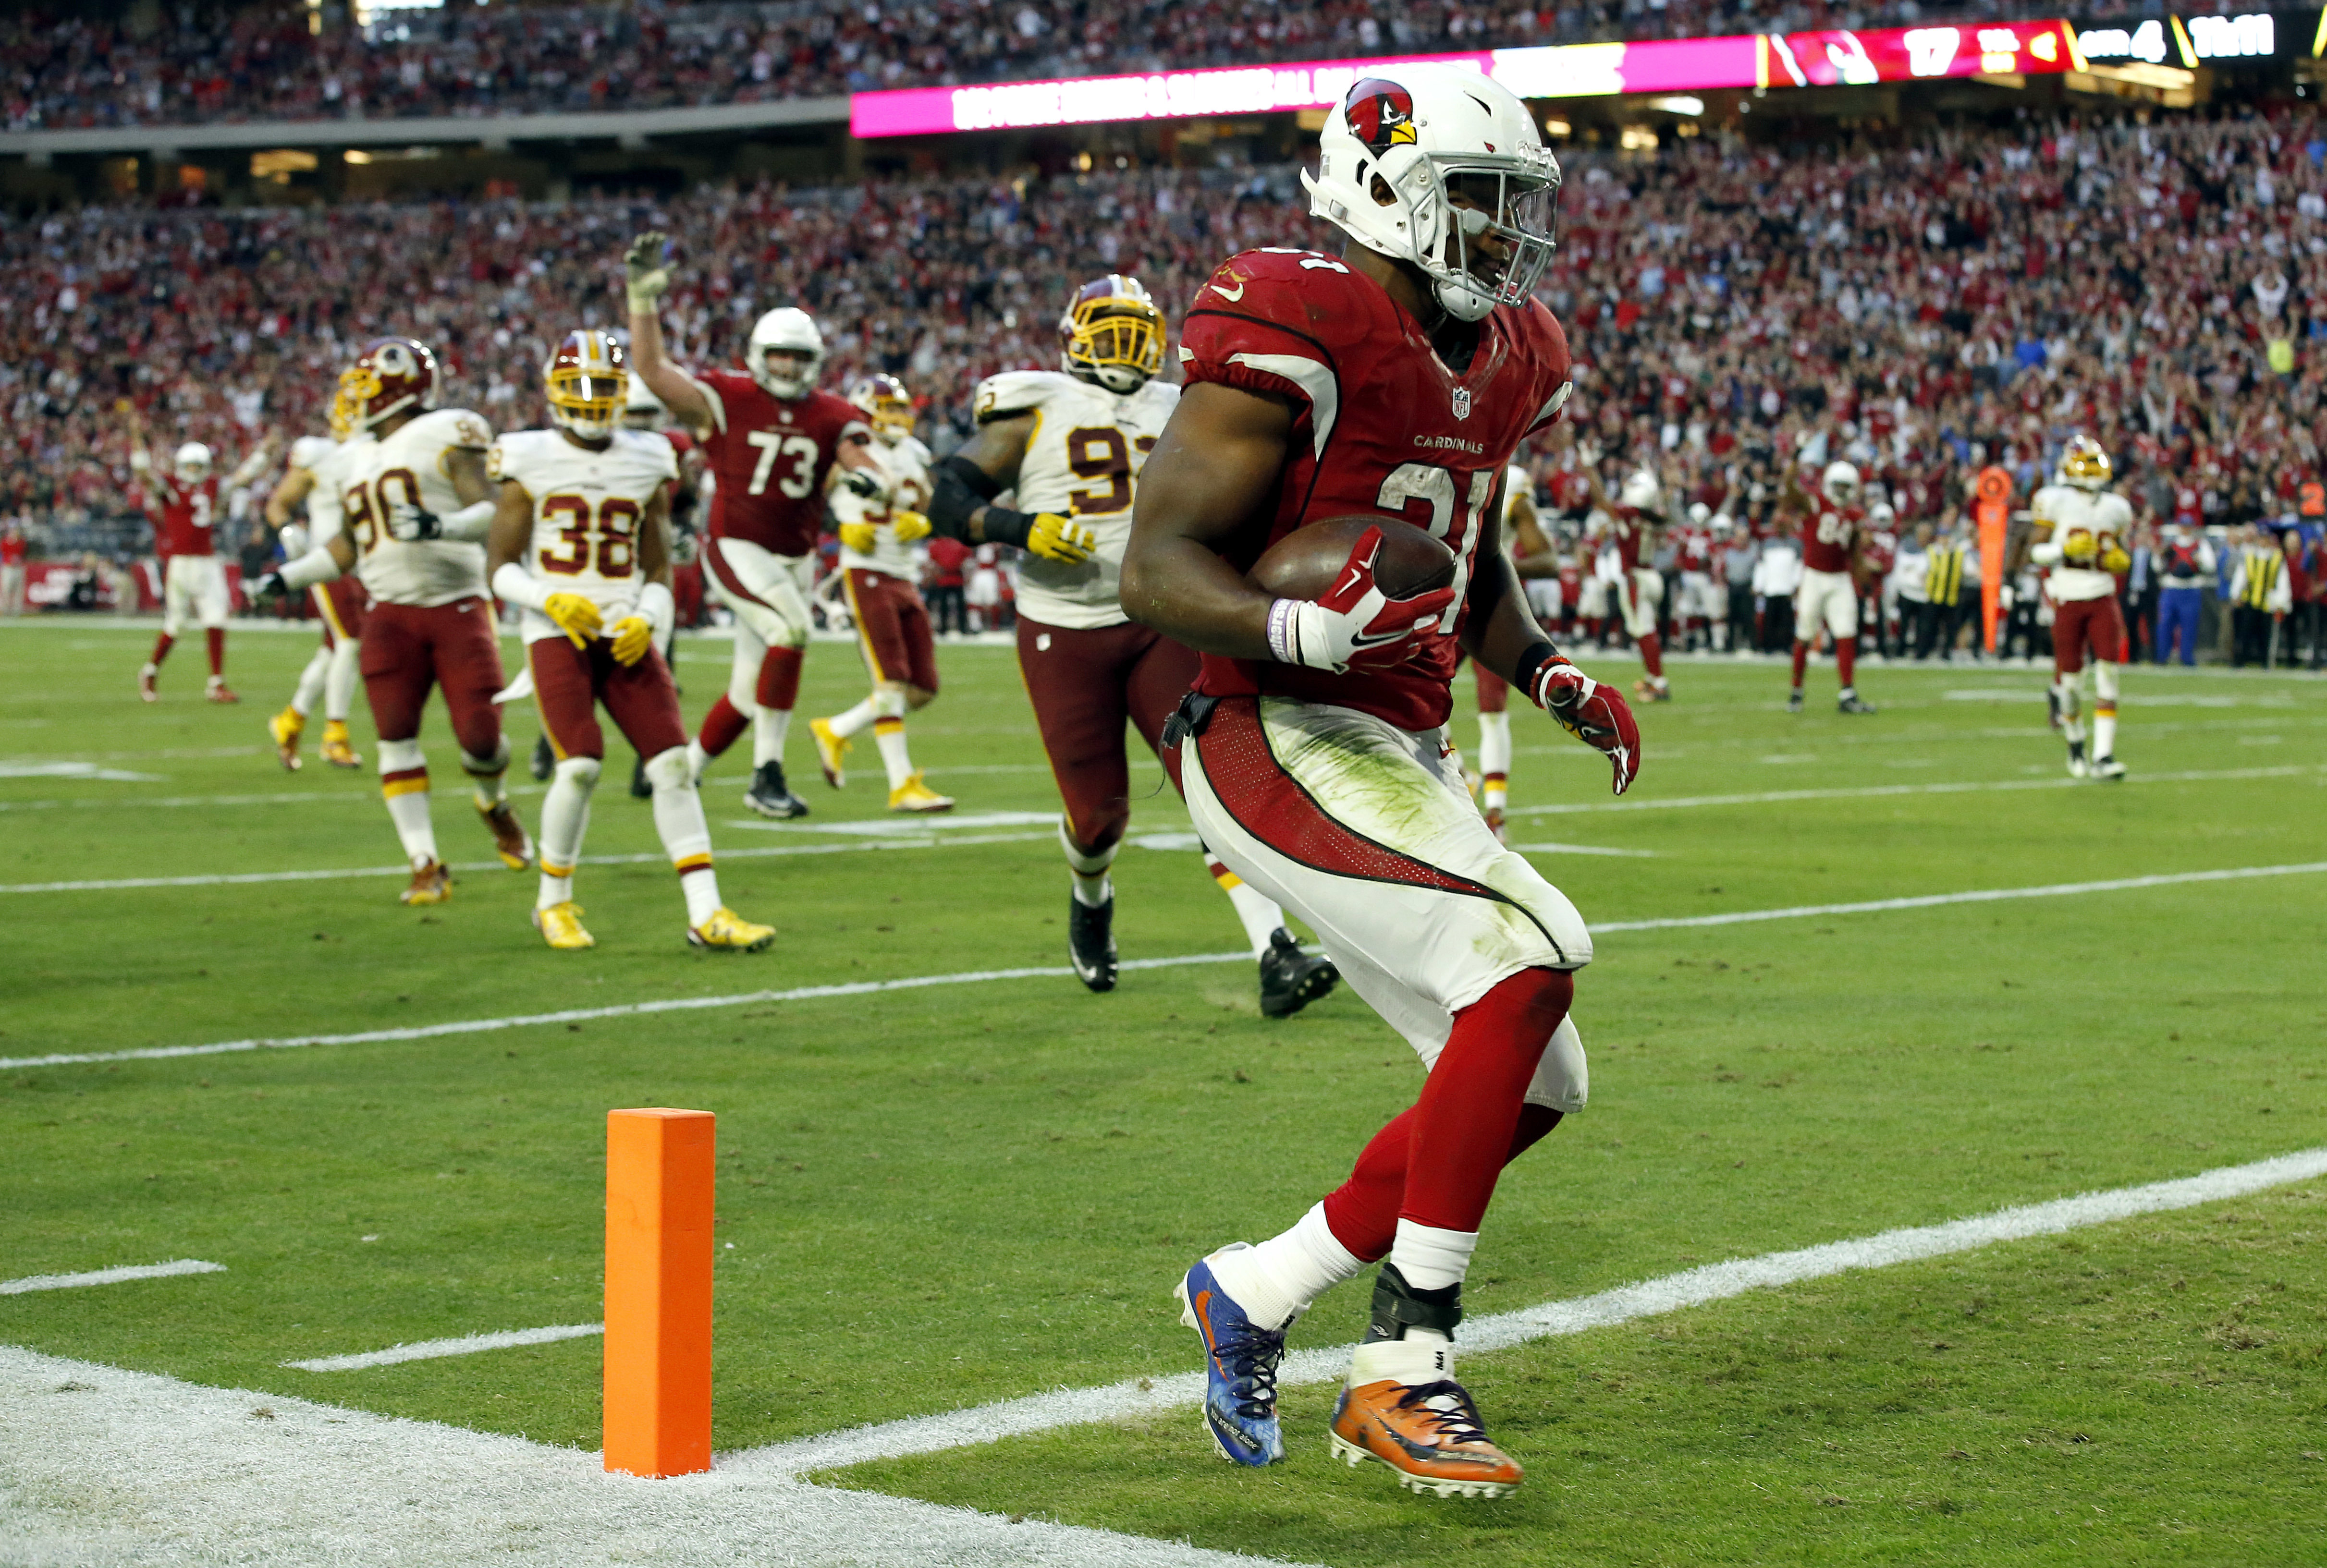 Arizona Cardinals running back David Johnson (31) scores a touchdown against the Washington Redskins during the second half of an NFL football game, Sunday, Dec. 4, 2016, in Glendale, Ariz. (AP Photo/Ross D. Franklin)